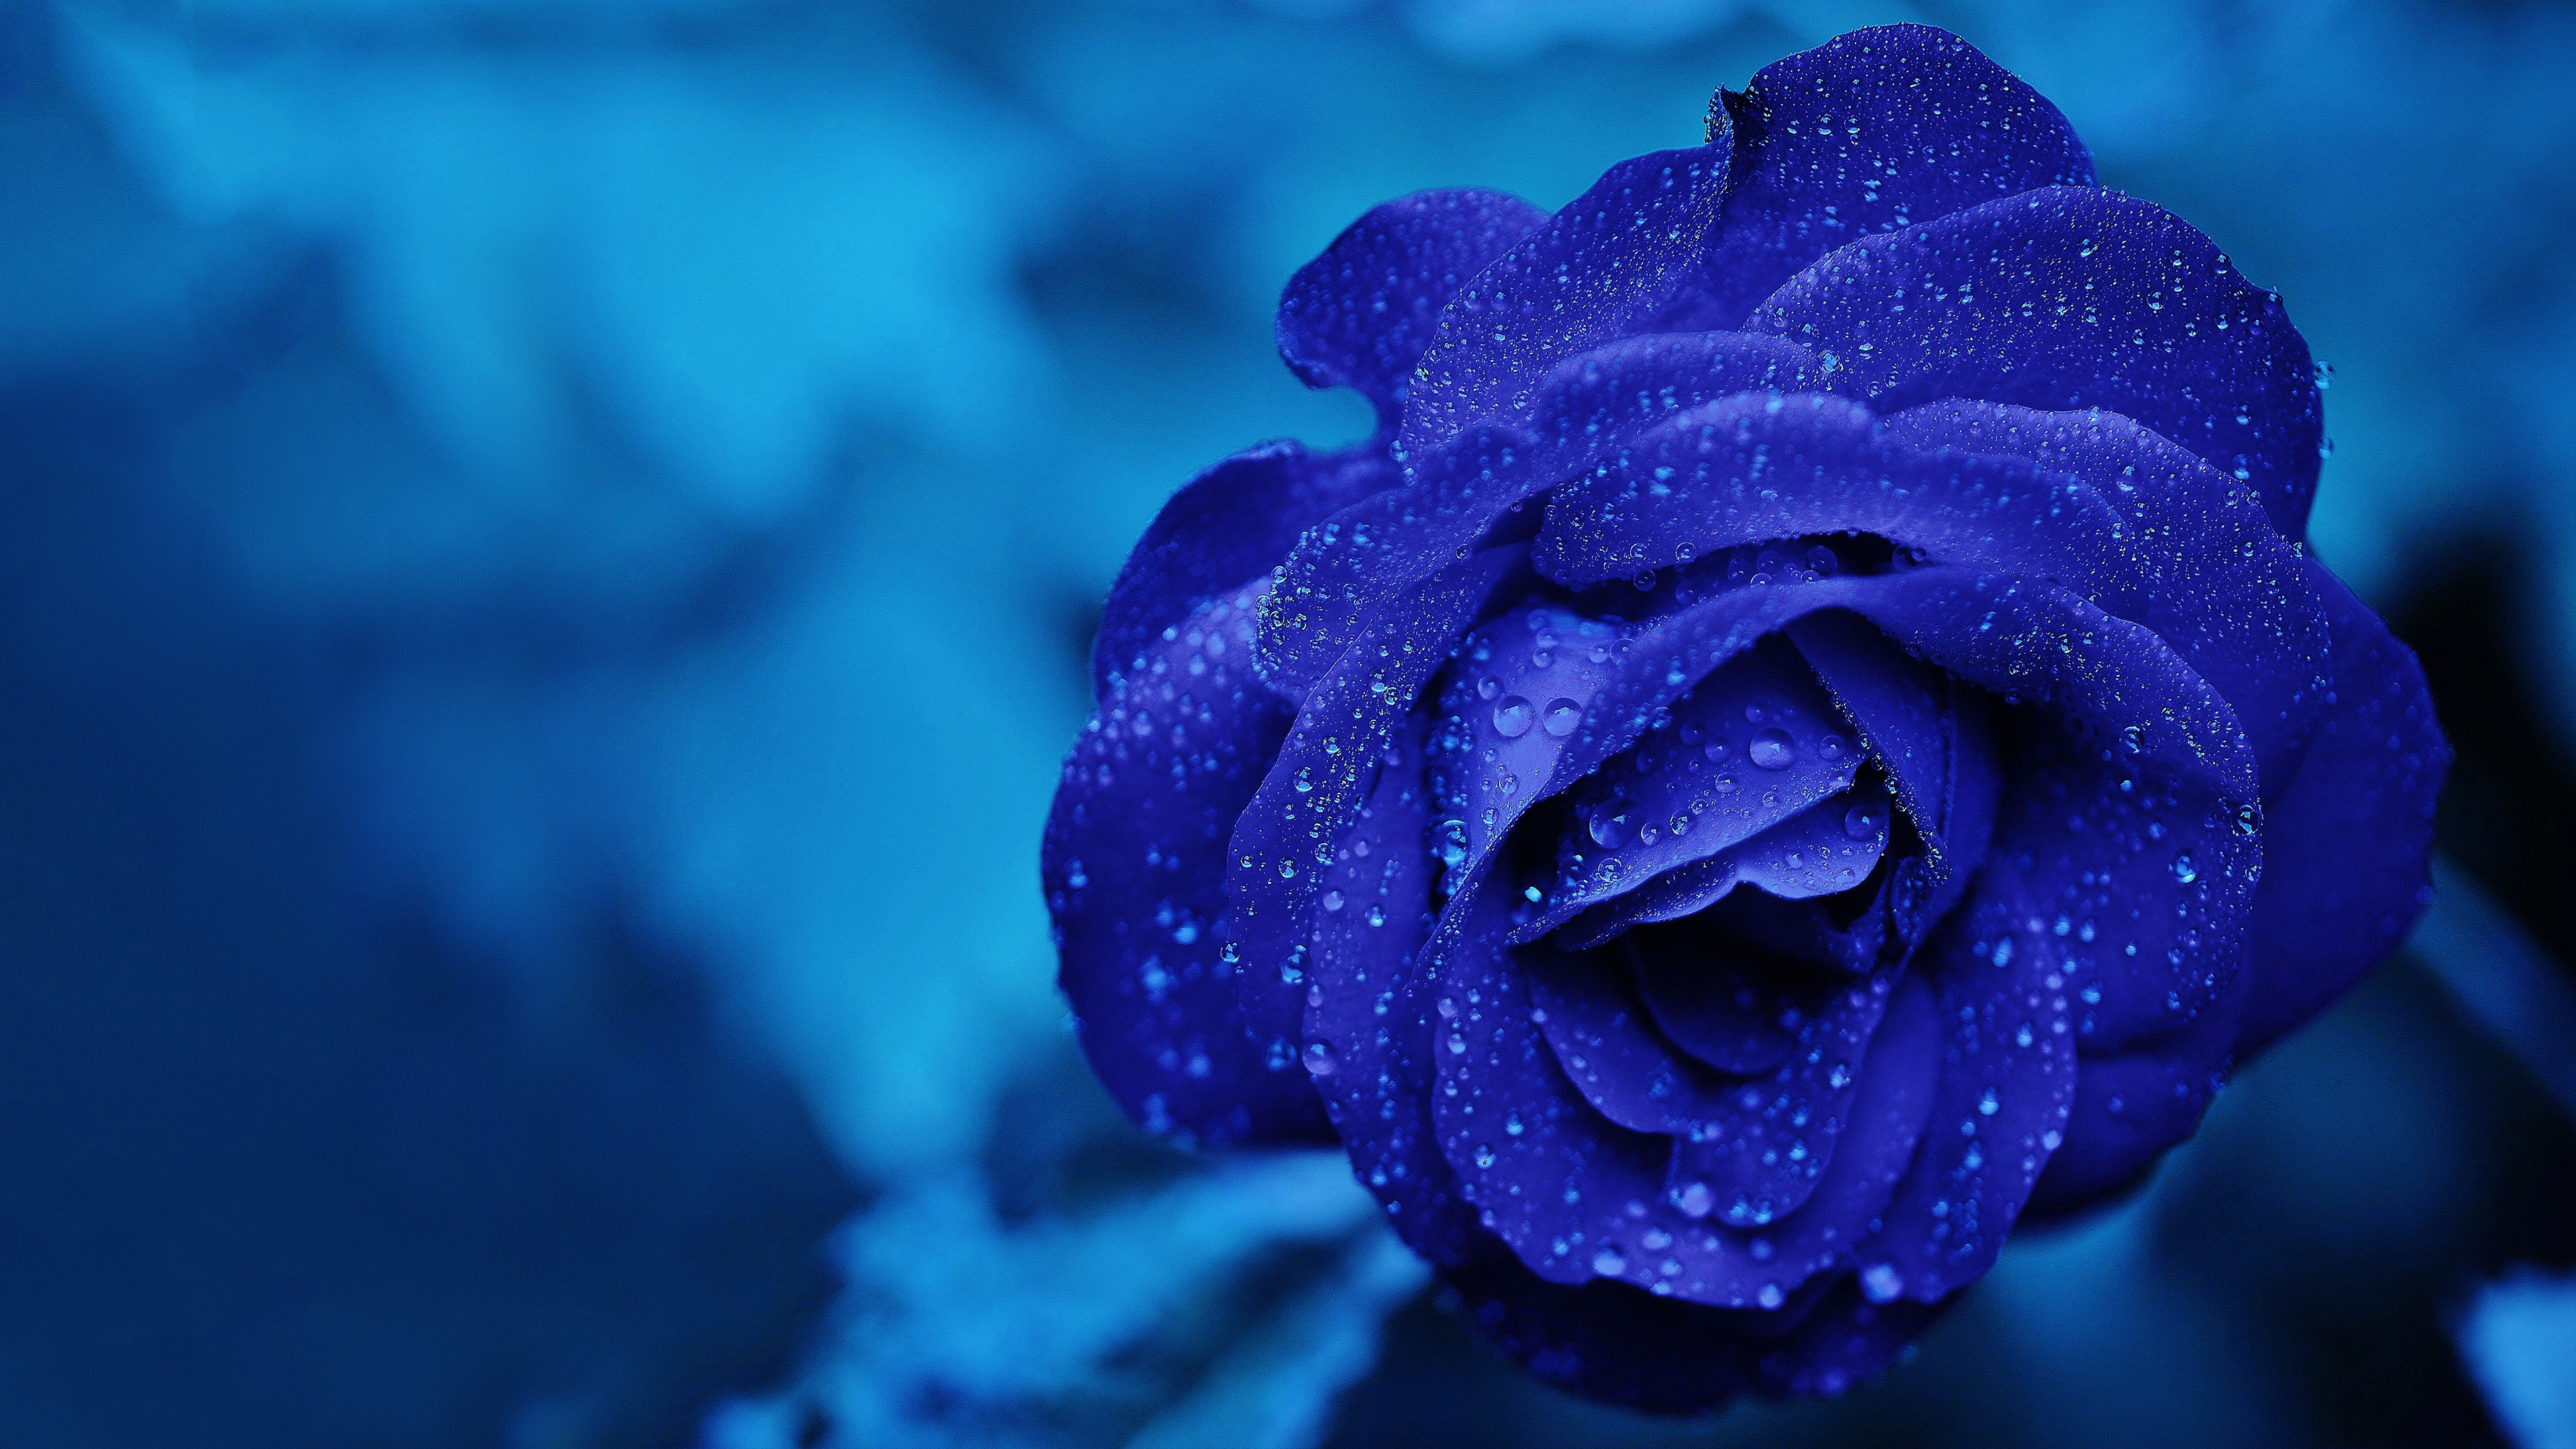 Blue Rose ChromeBook Wallpaper size 3840 x 2160 Blue Rose ChromeBook Wallpaper size 3840 x 2160